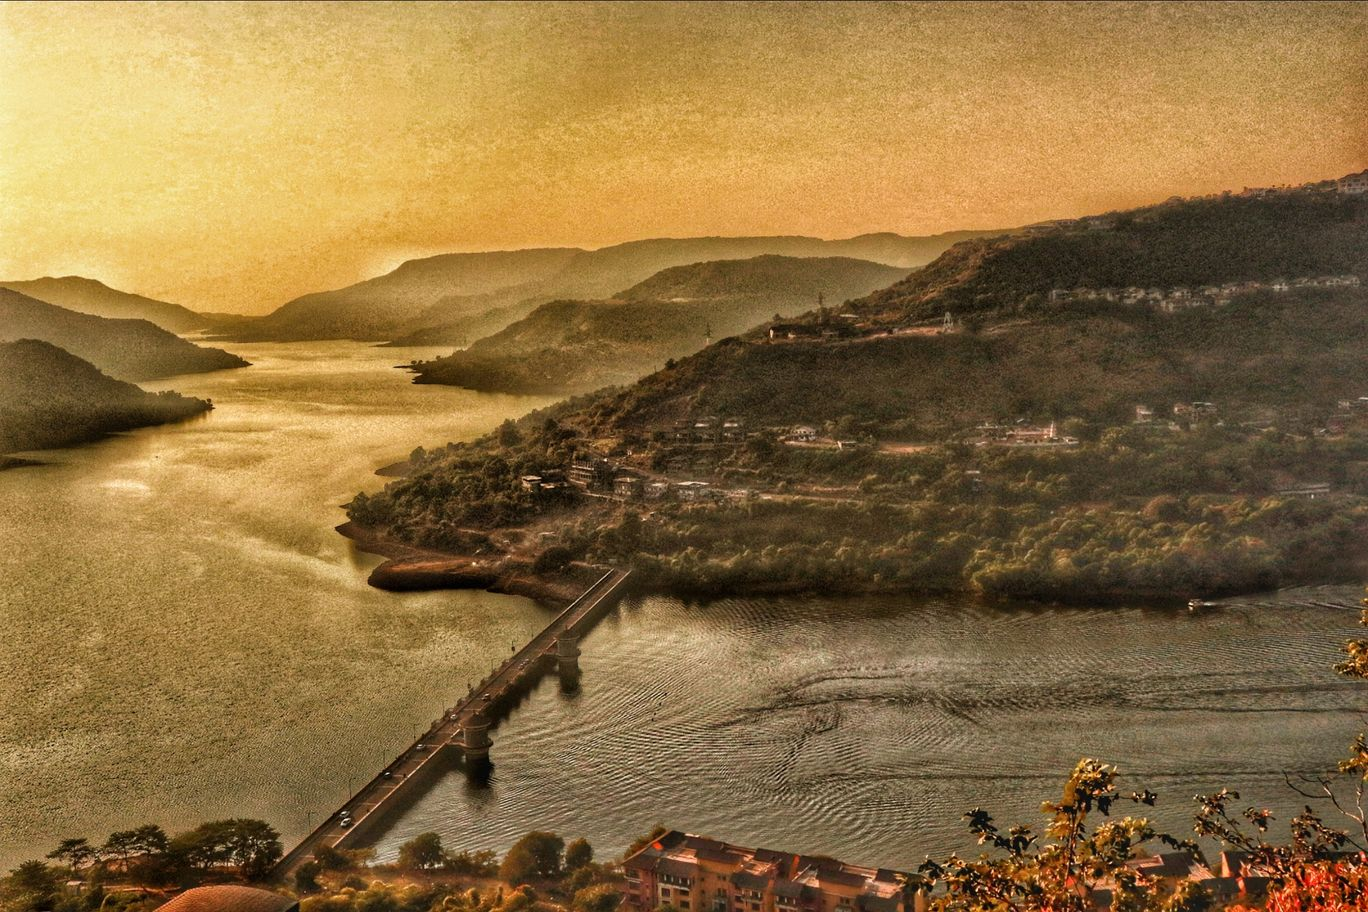 Photo of Lavasa By letztravelfar